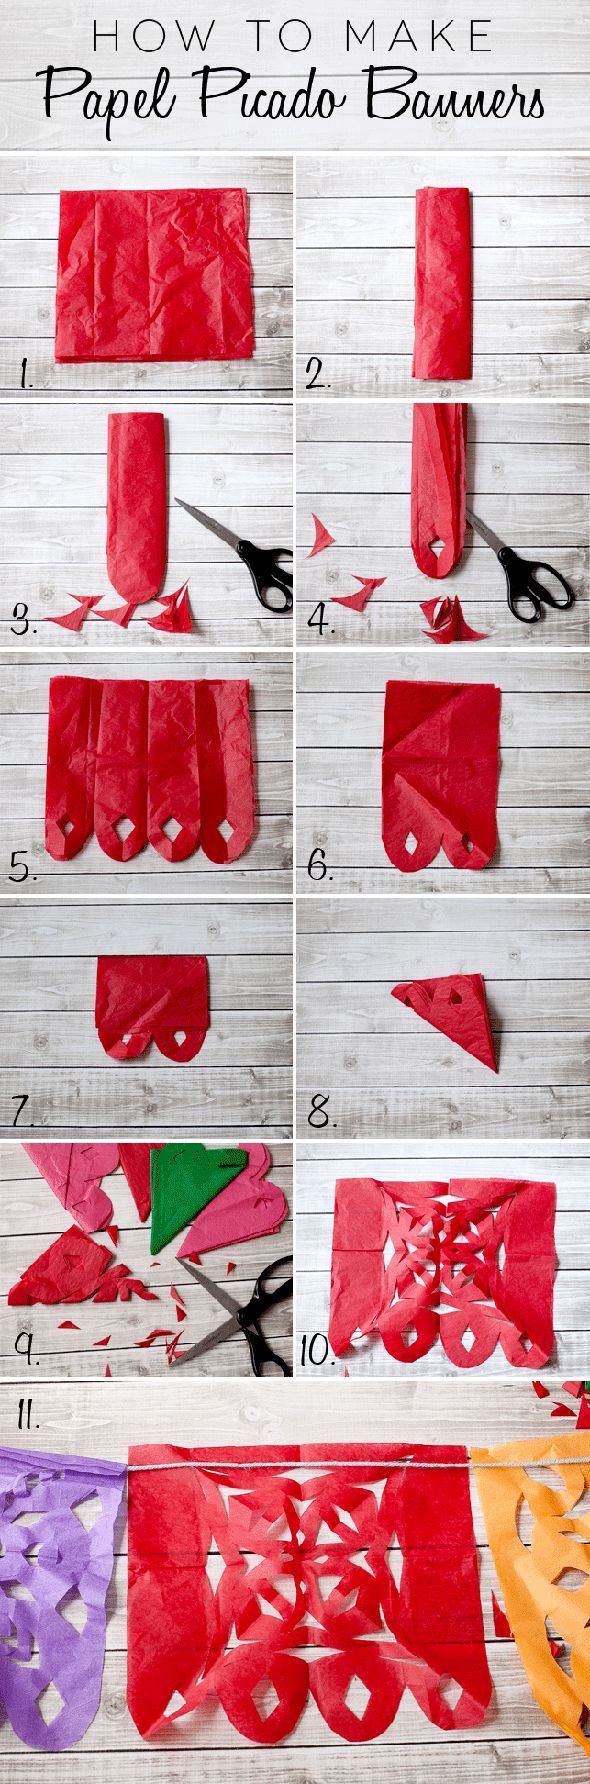 papel picado cinco de mayo party banner - DIY